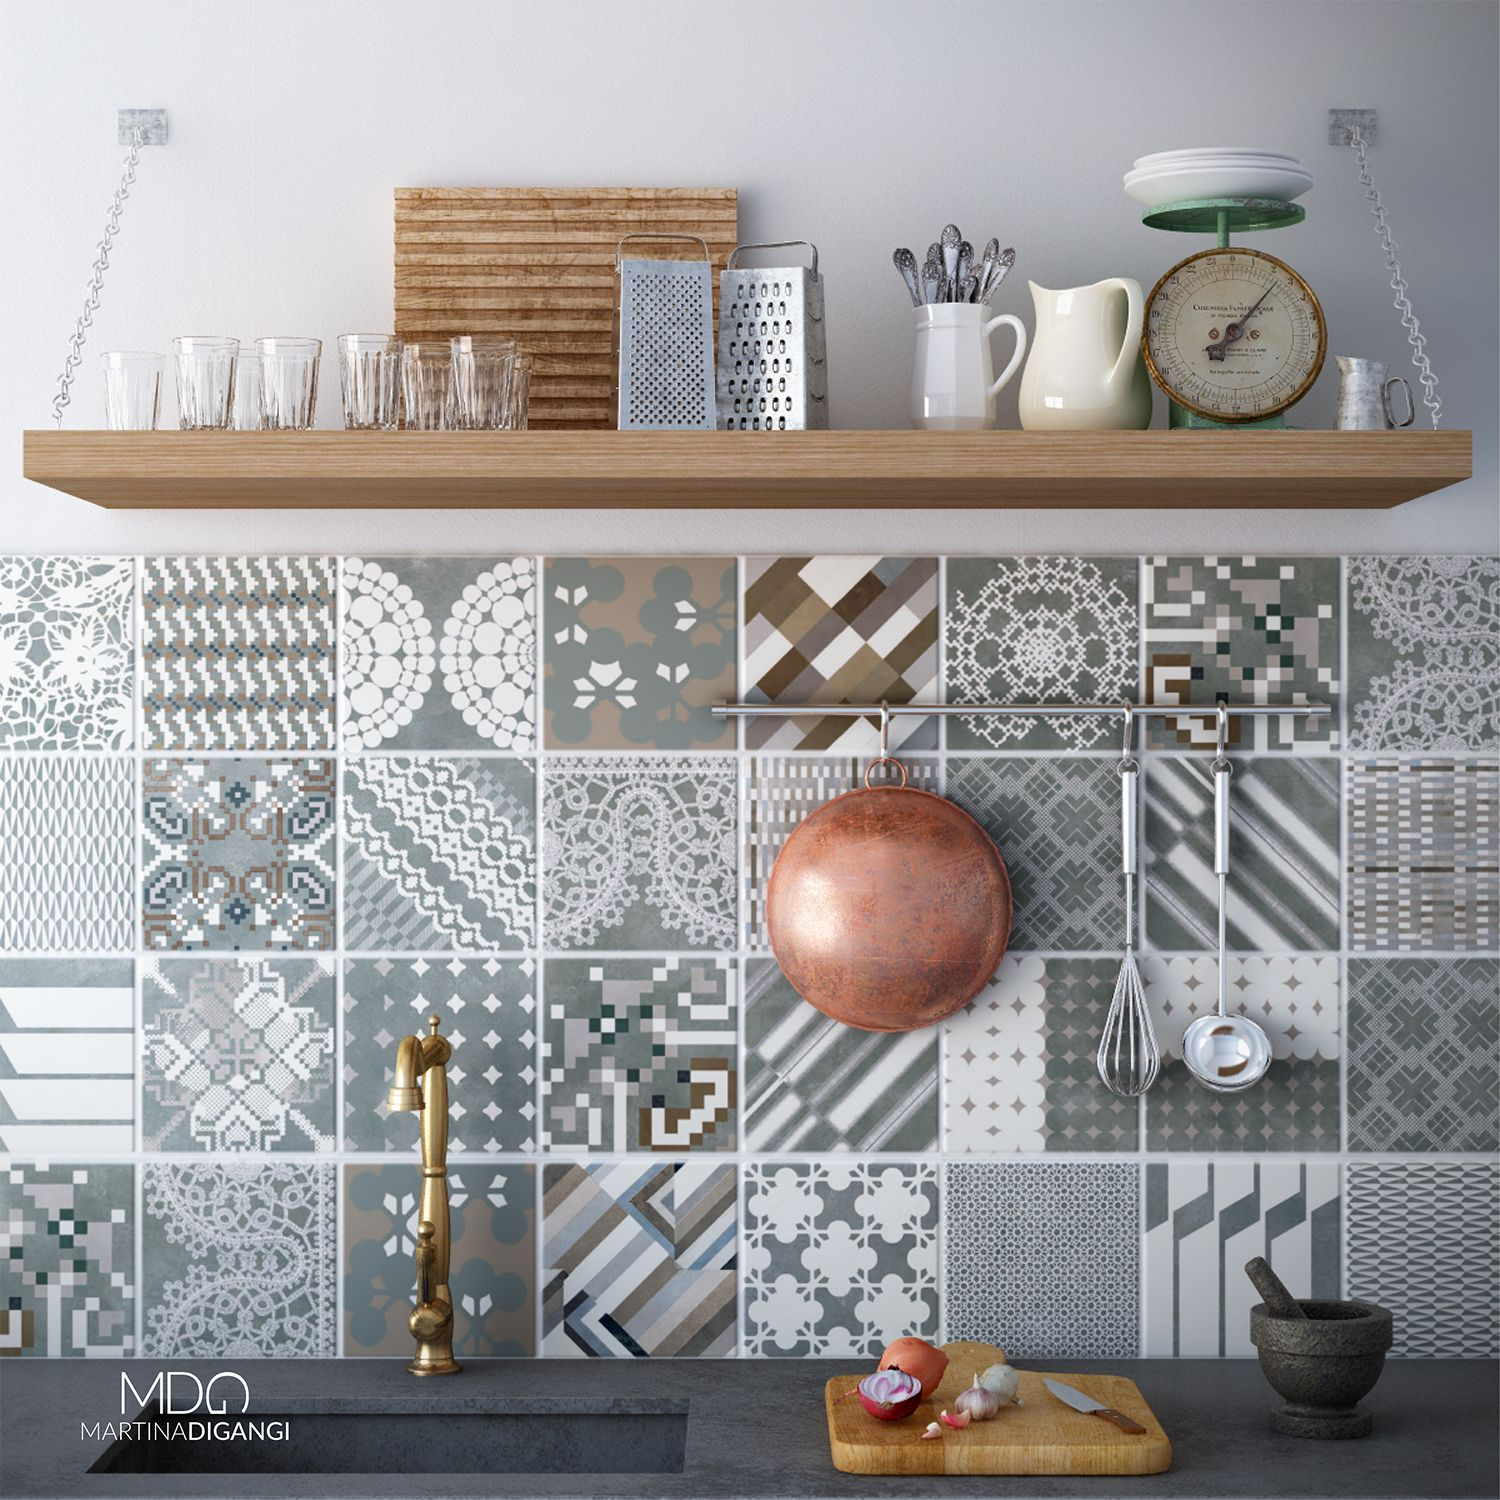 #interior #kitchen #rustic #mutina